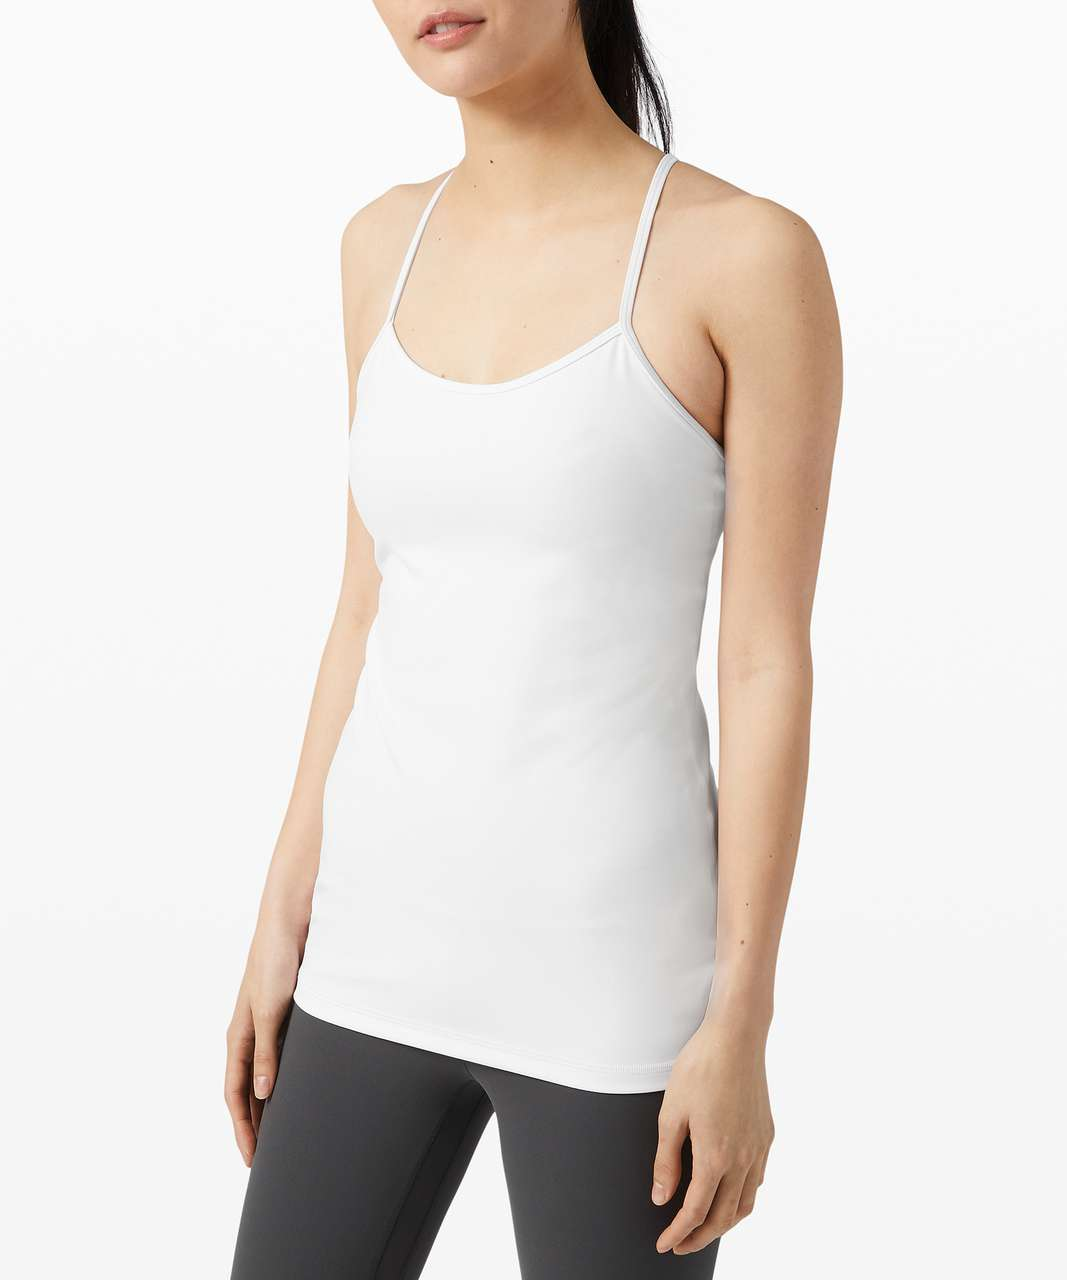 Lululemon Power Y Tank *Everlux - White